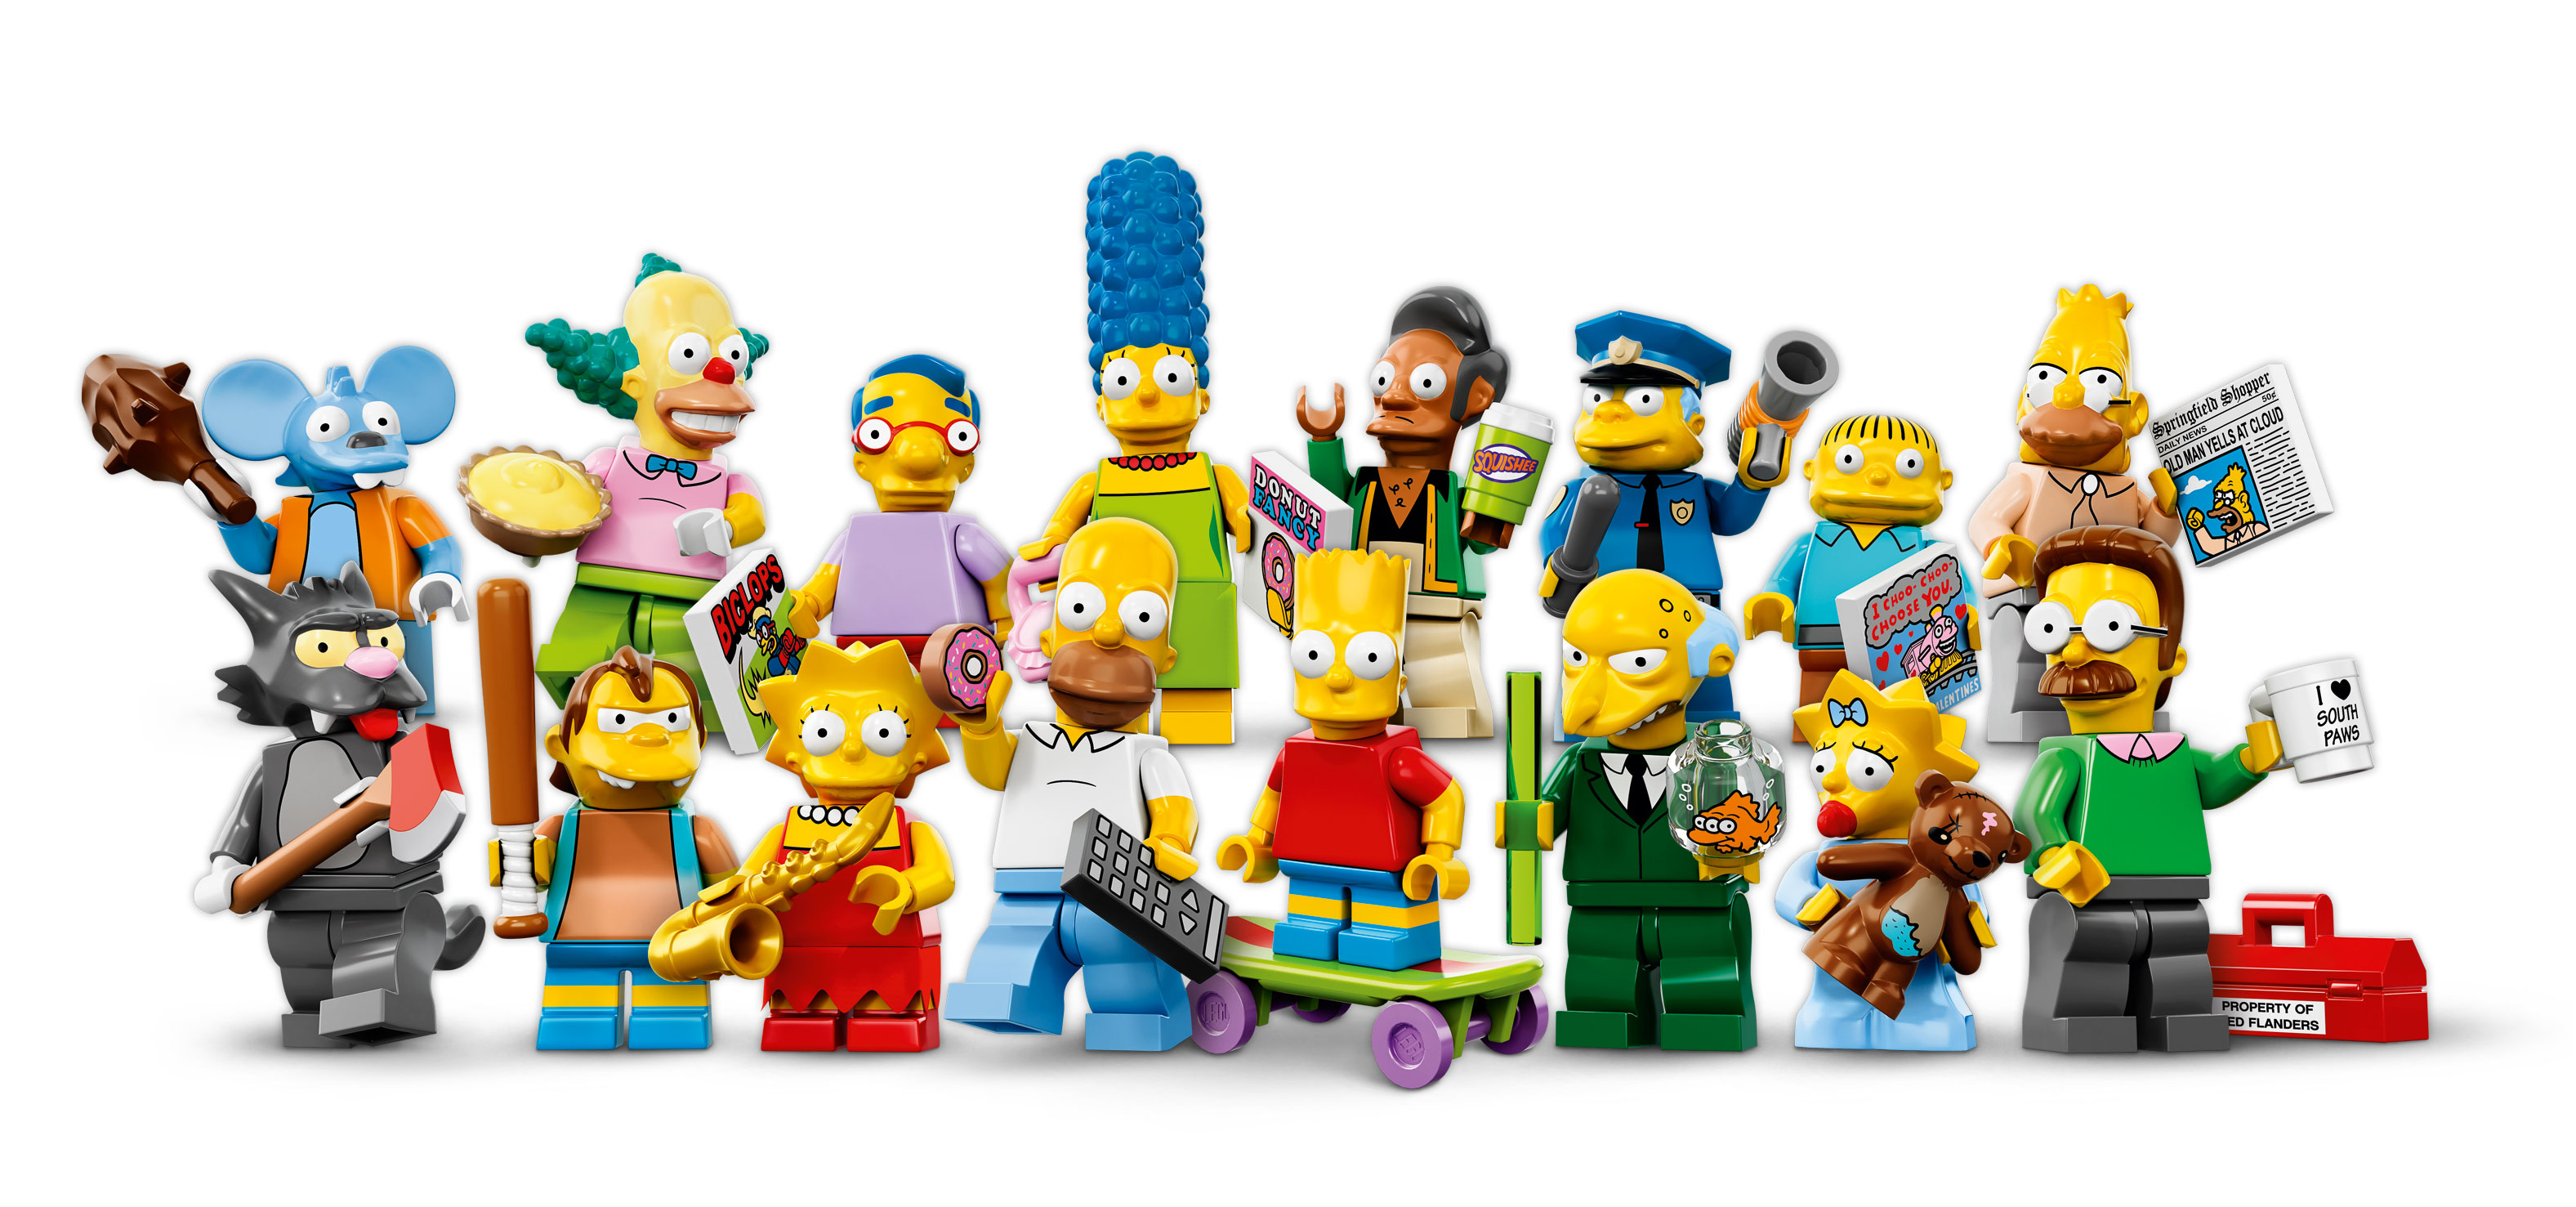 The Simpsons Series Collectible Minifigures (71005)